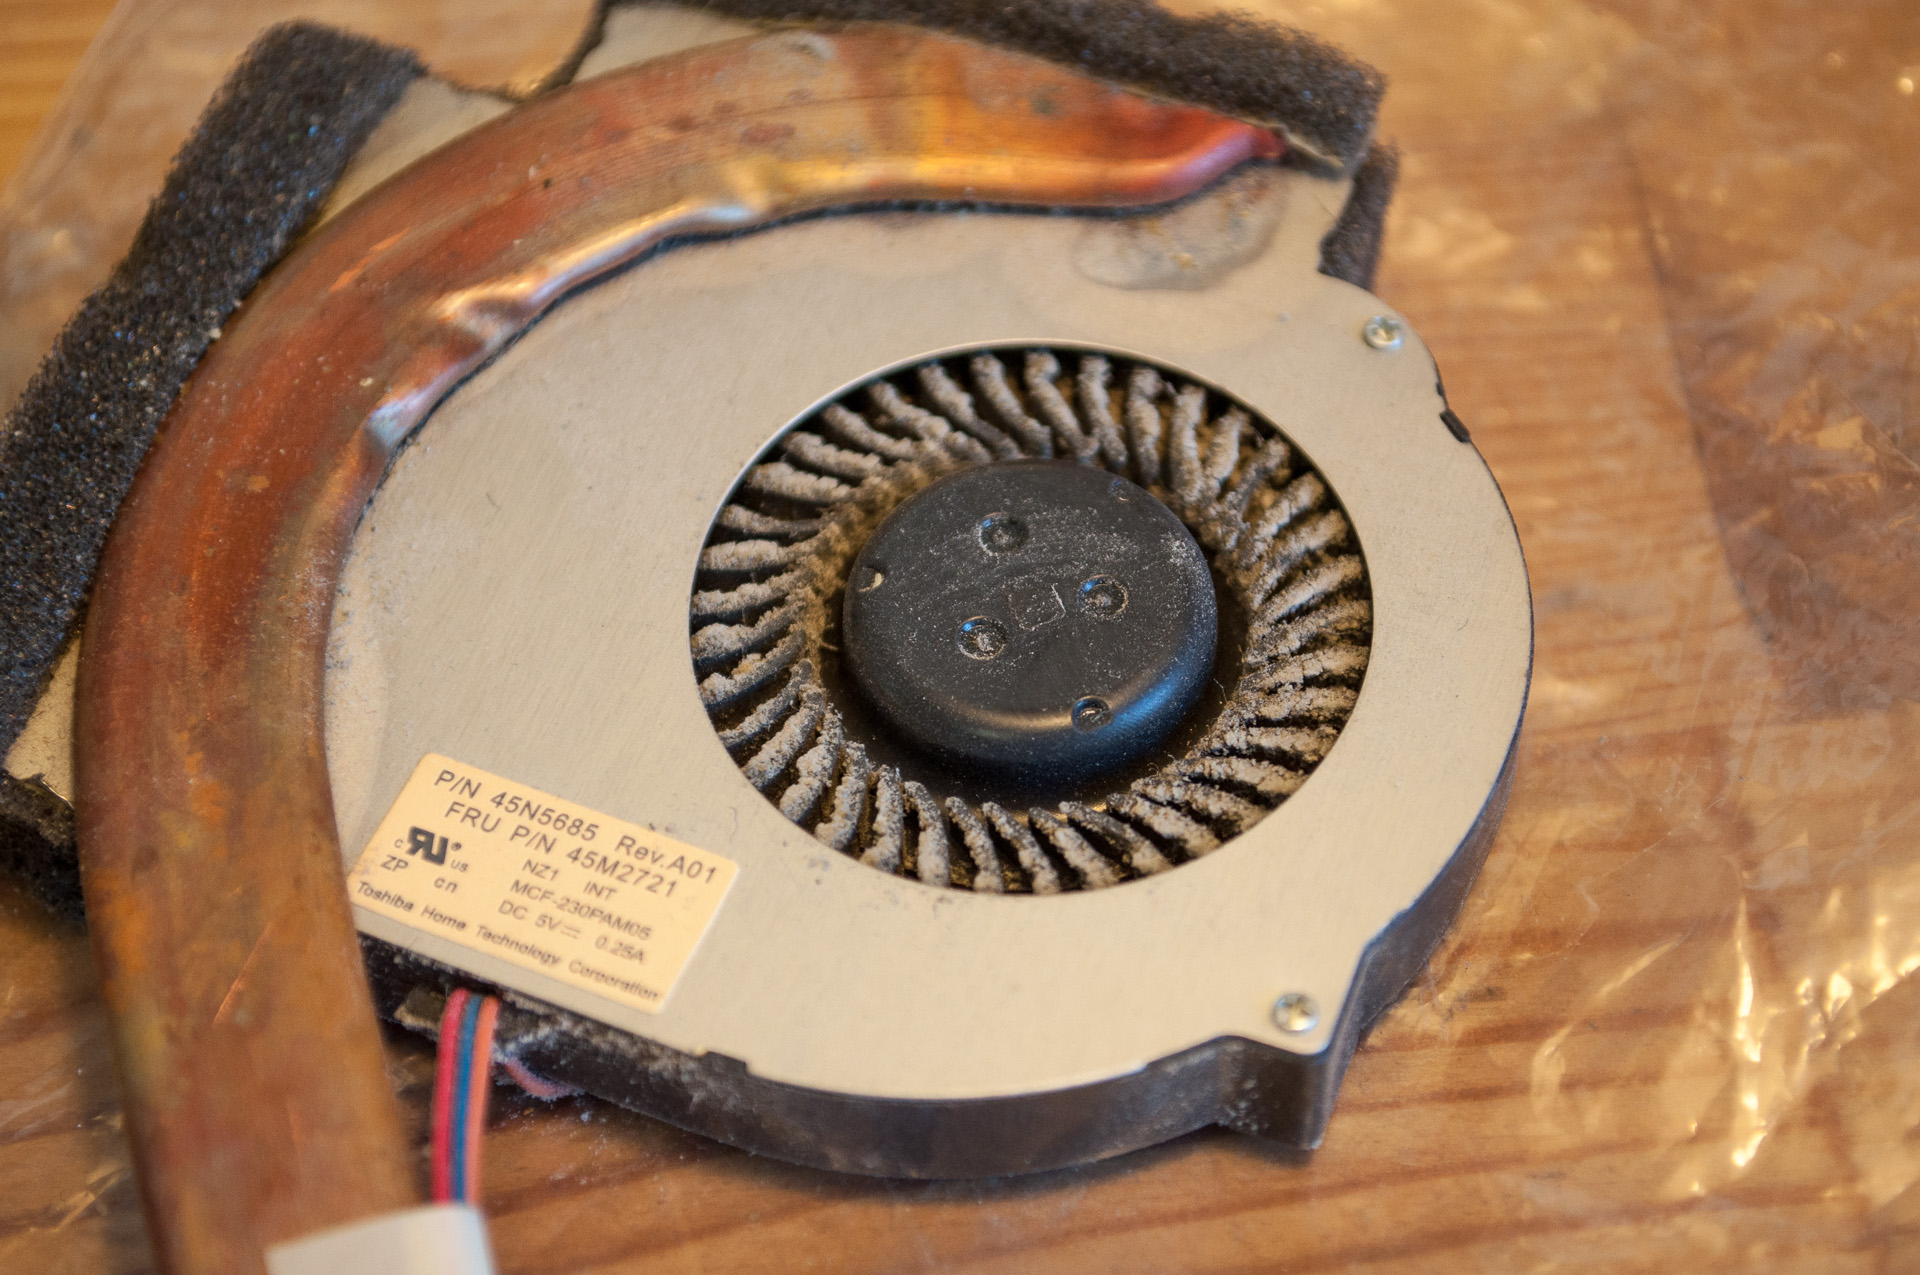 Old dusty computer fan